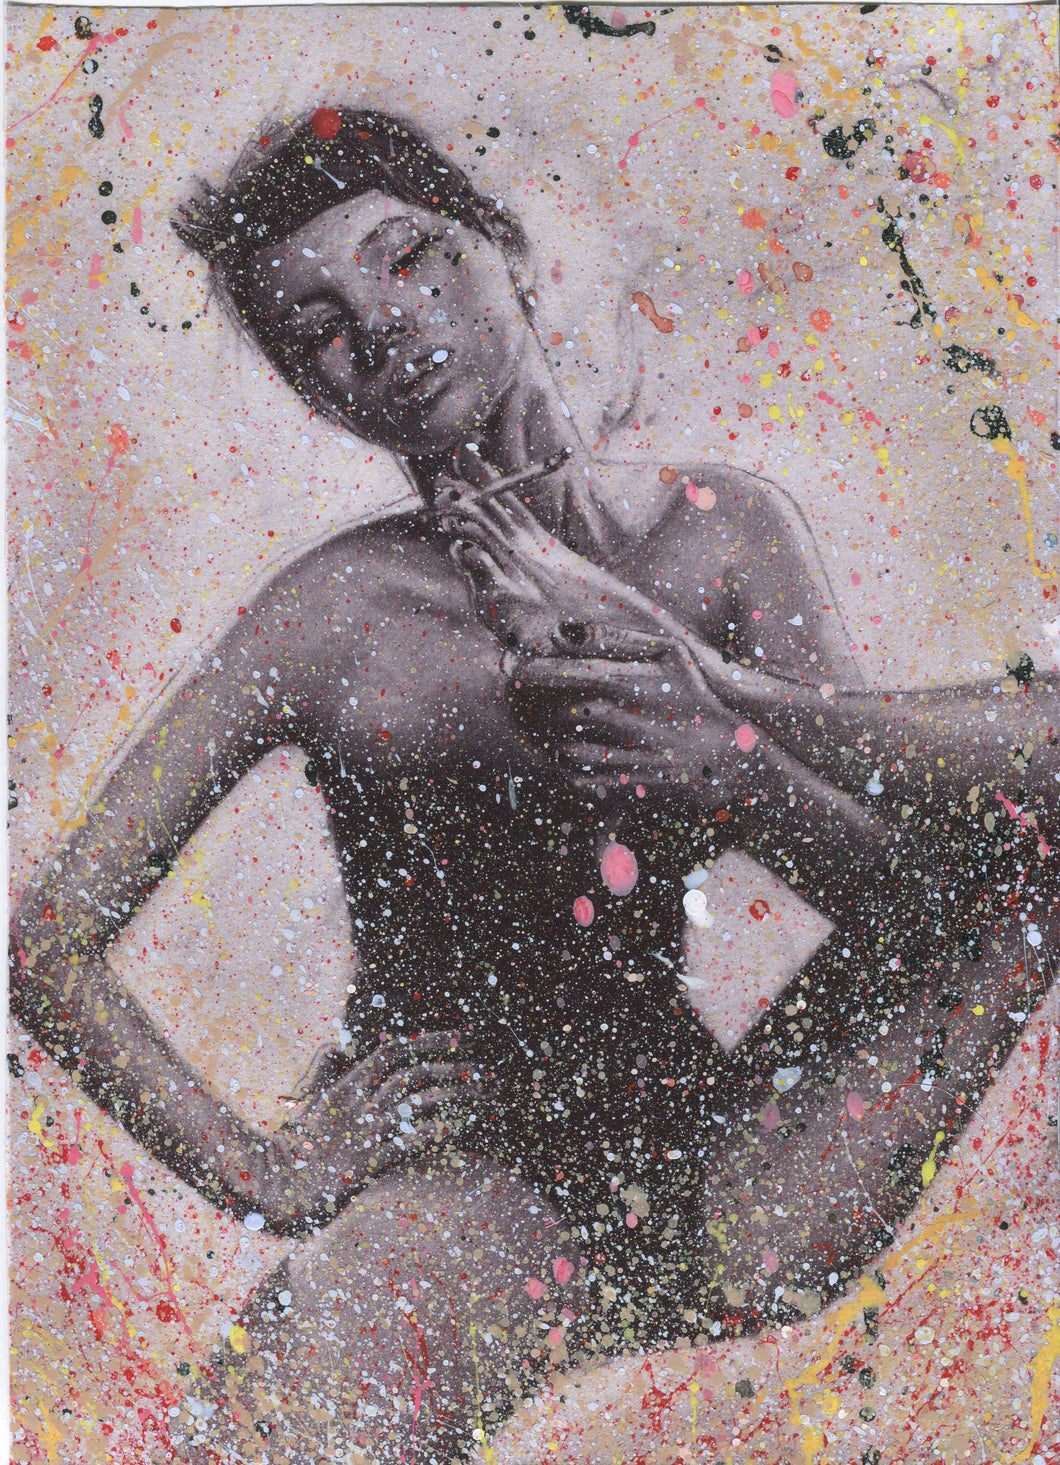 Kate Moss splattered paint version of foot smoking black and white charcoal portrait drawing erotic sexy art poster print wall decor